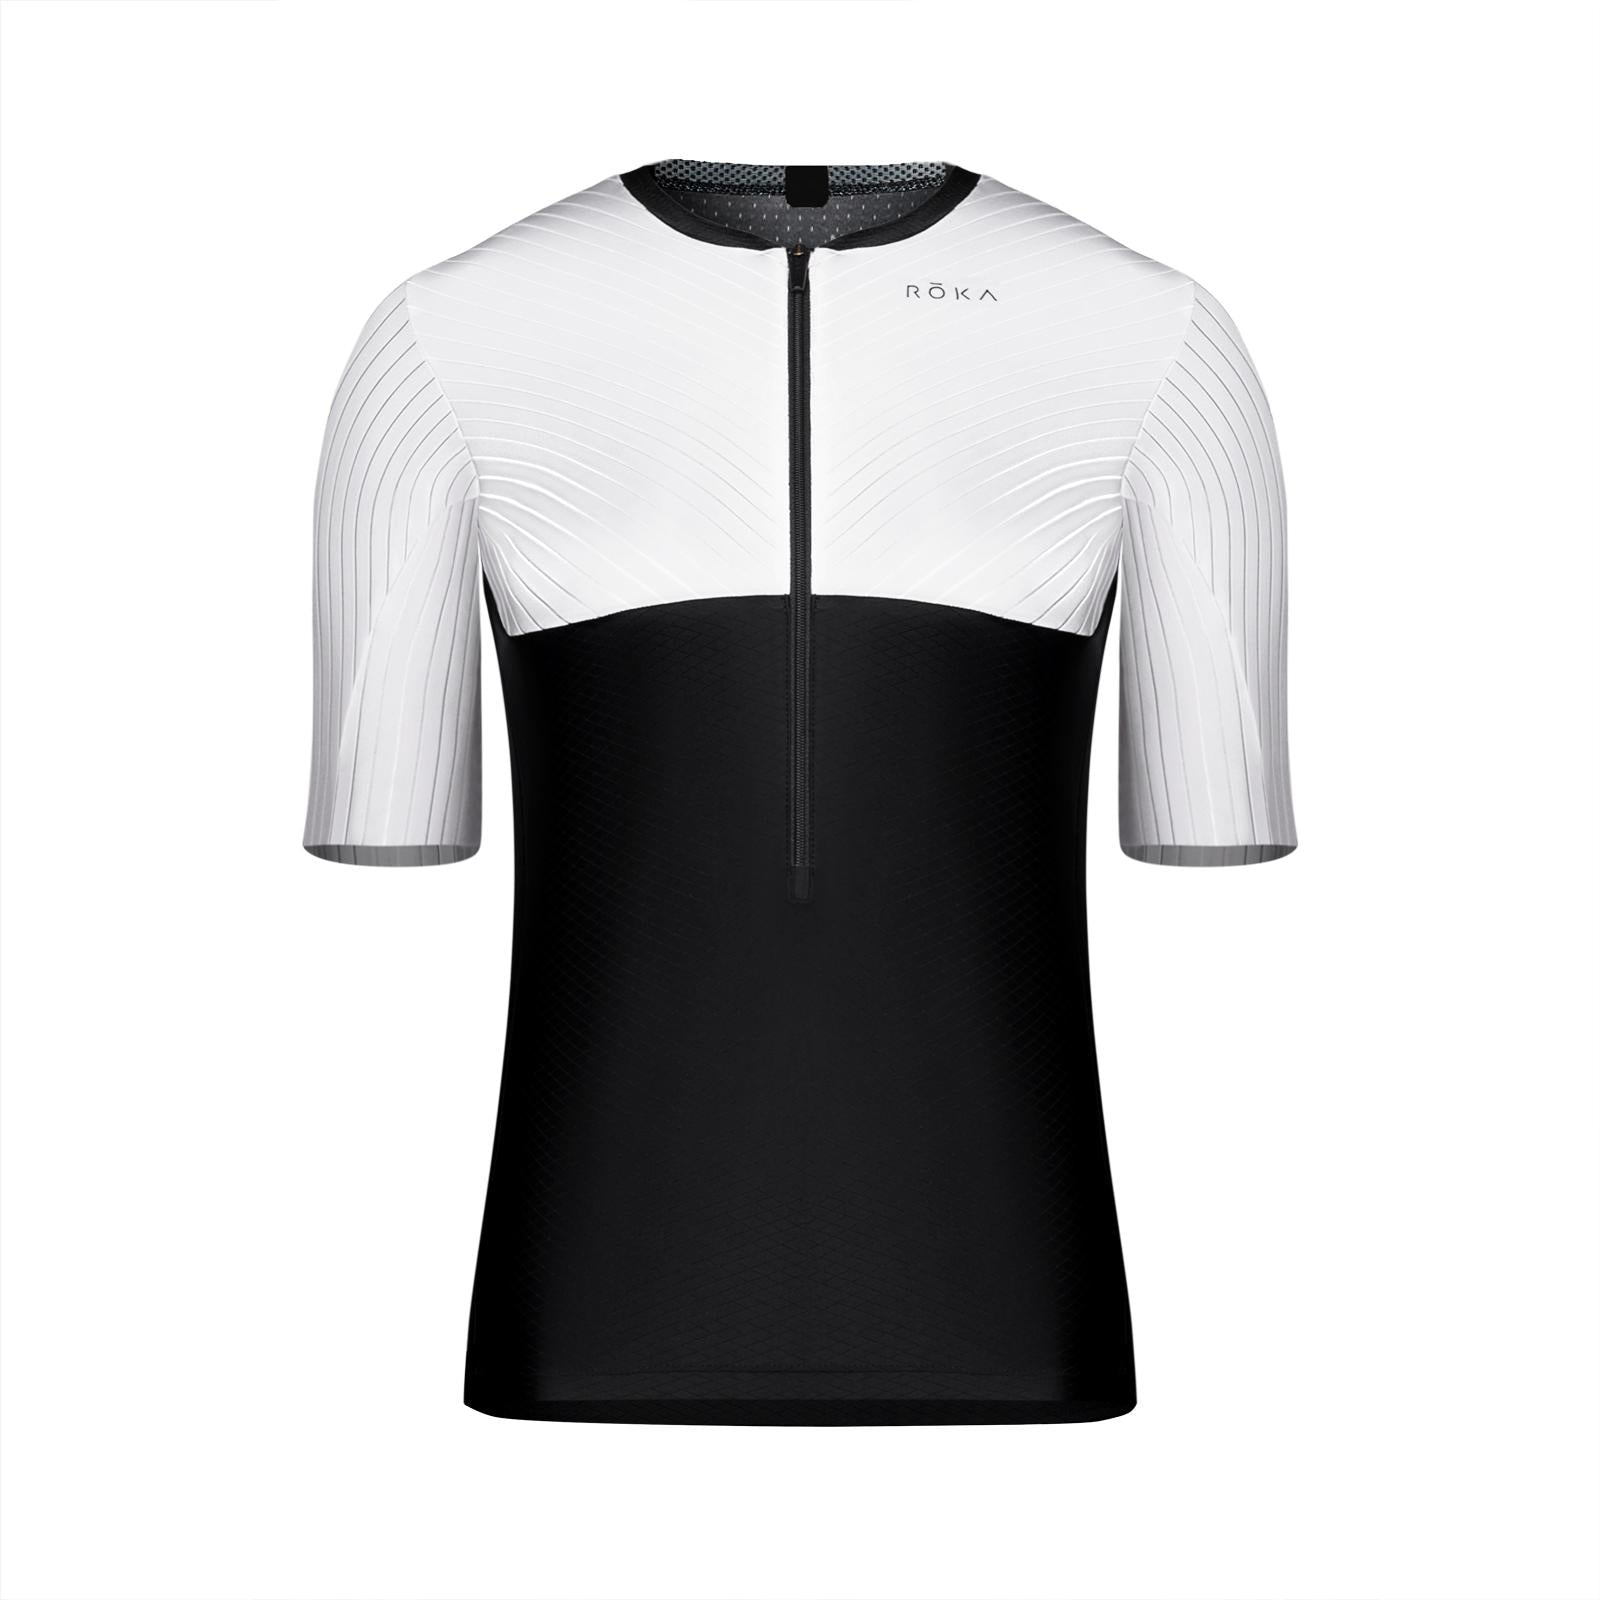 Women's Gen II Elite Aero Short Sleeve Tri Top - White/Black